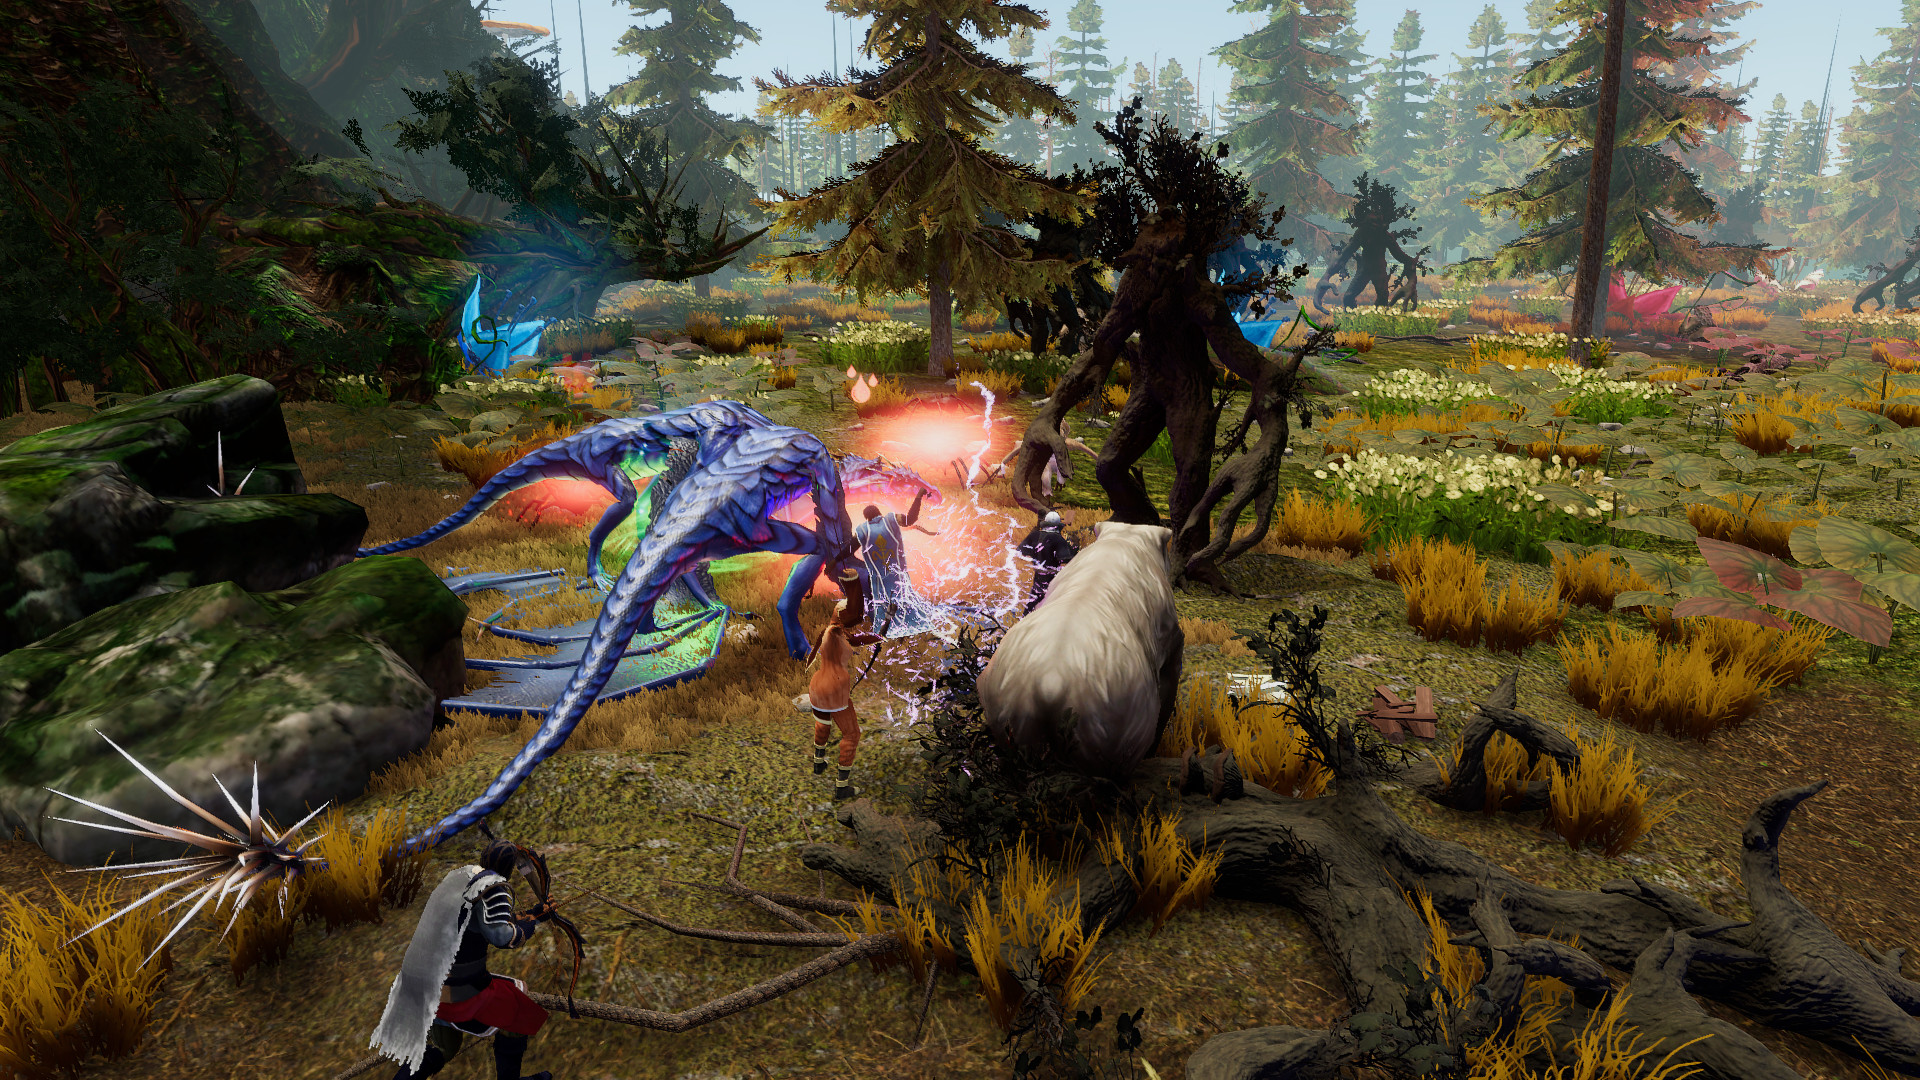 Save 34% on Legends of Aria on Steam